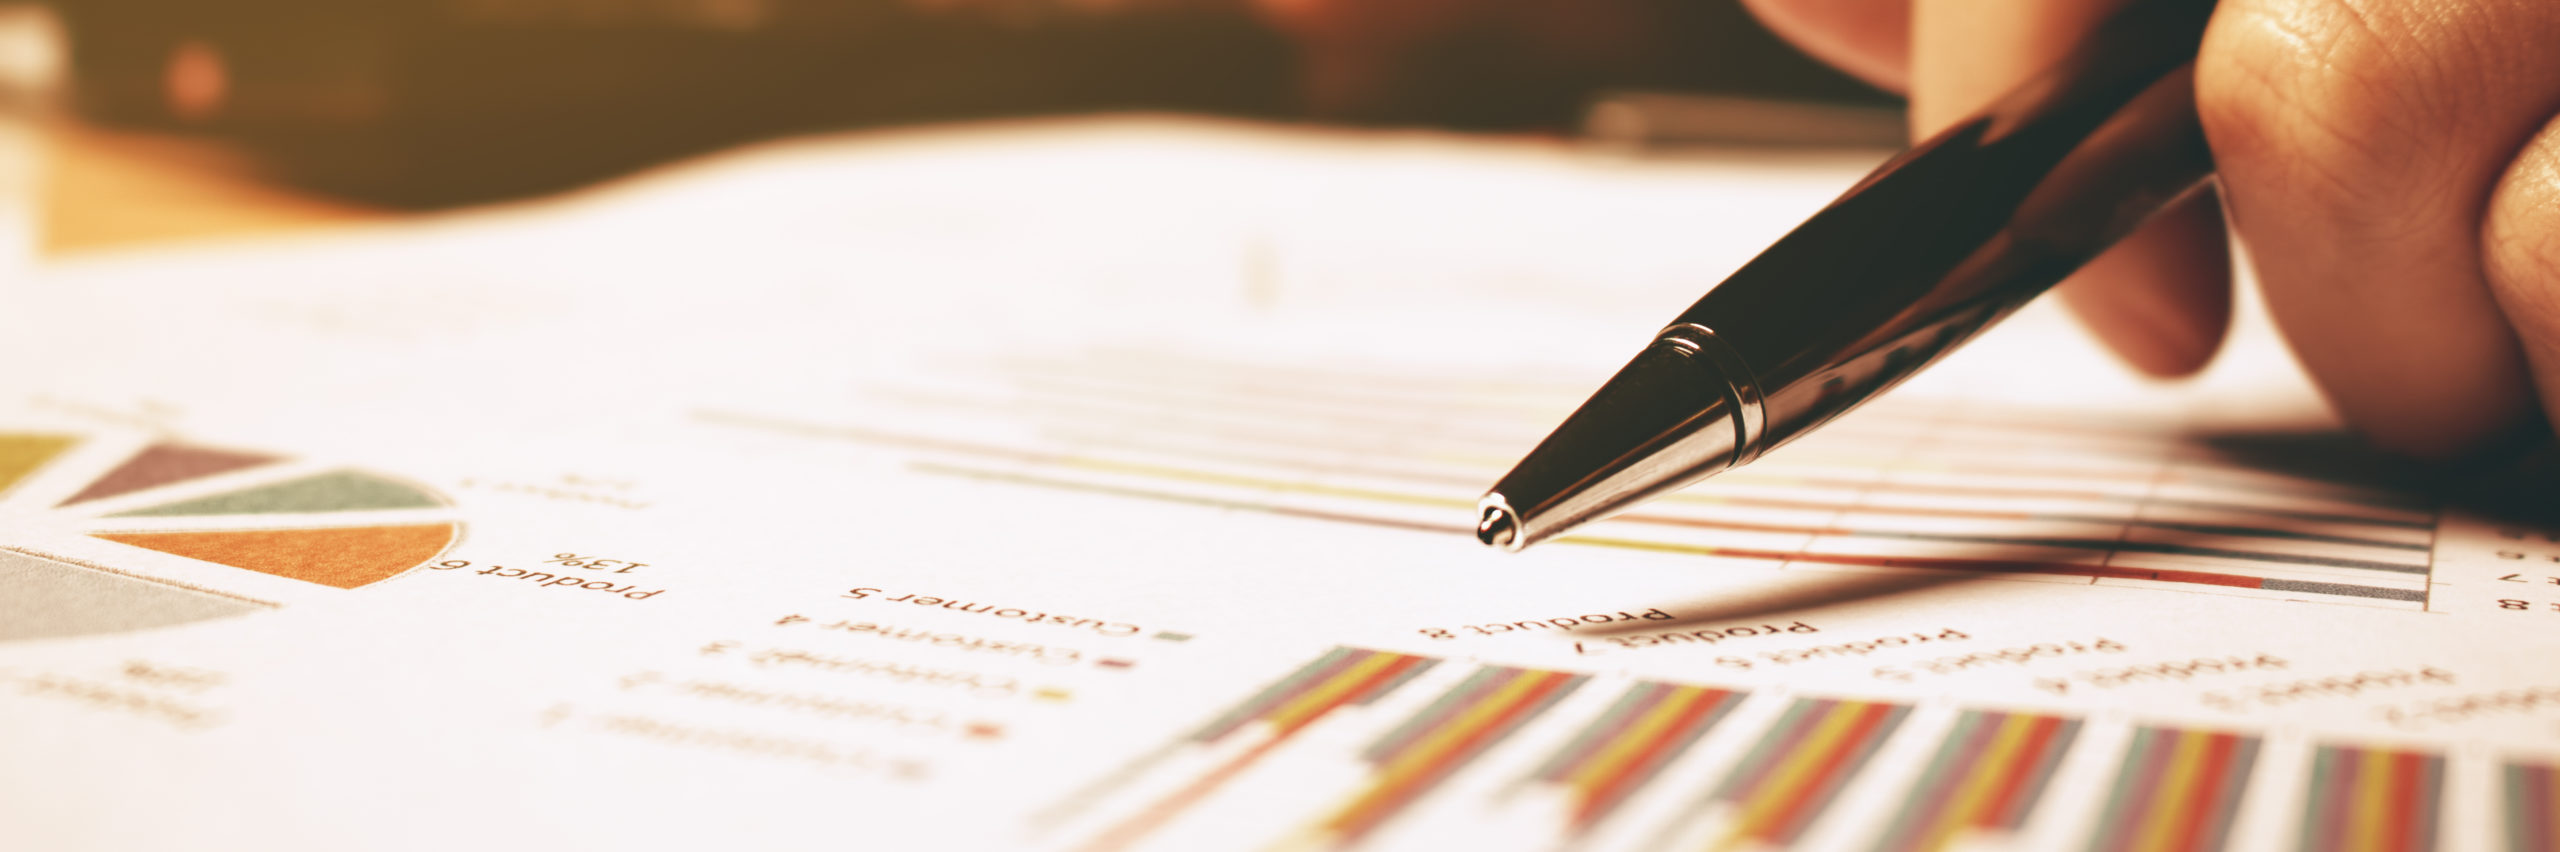 Hand woman holding pen pointing on summary report chart and calculate finance. - Image